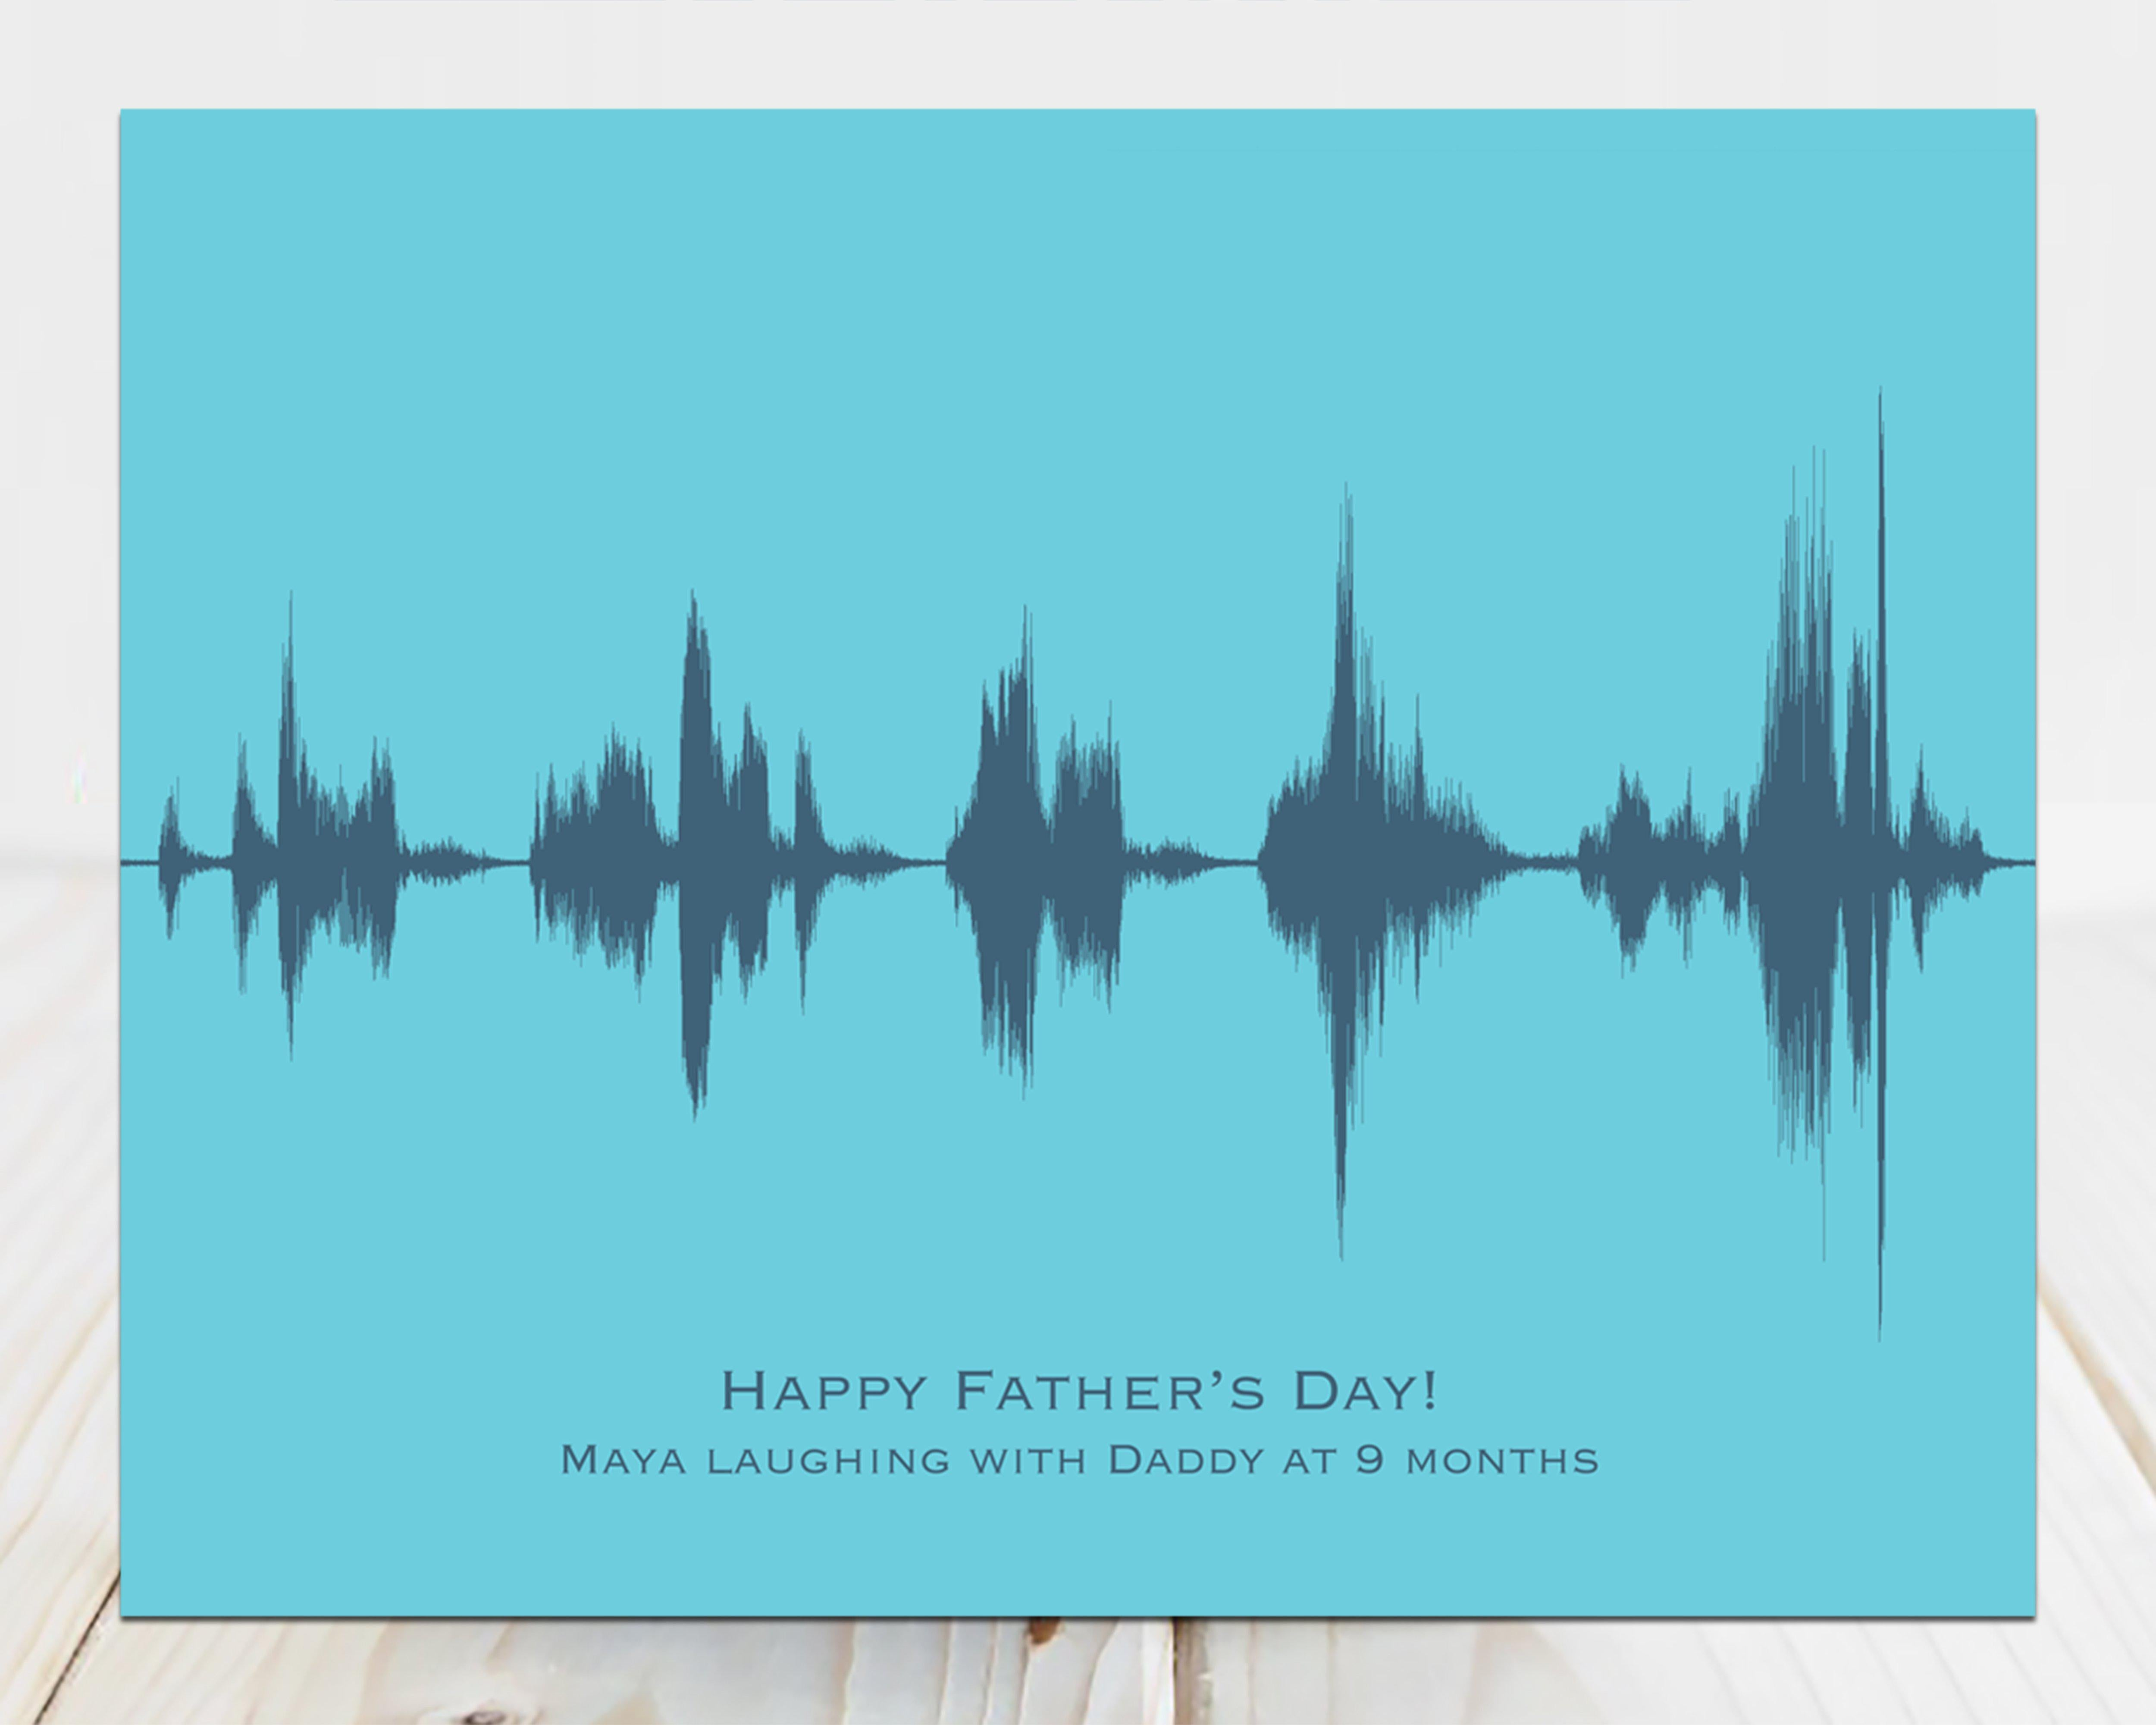 Personalized Fathers Day Gift, Child Laughing with Daddy - Artsy Voiceprint